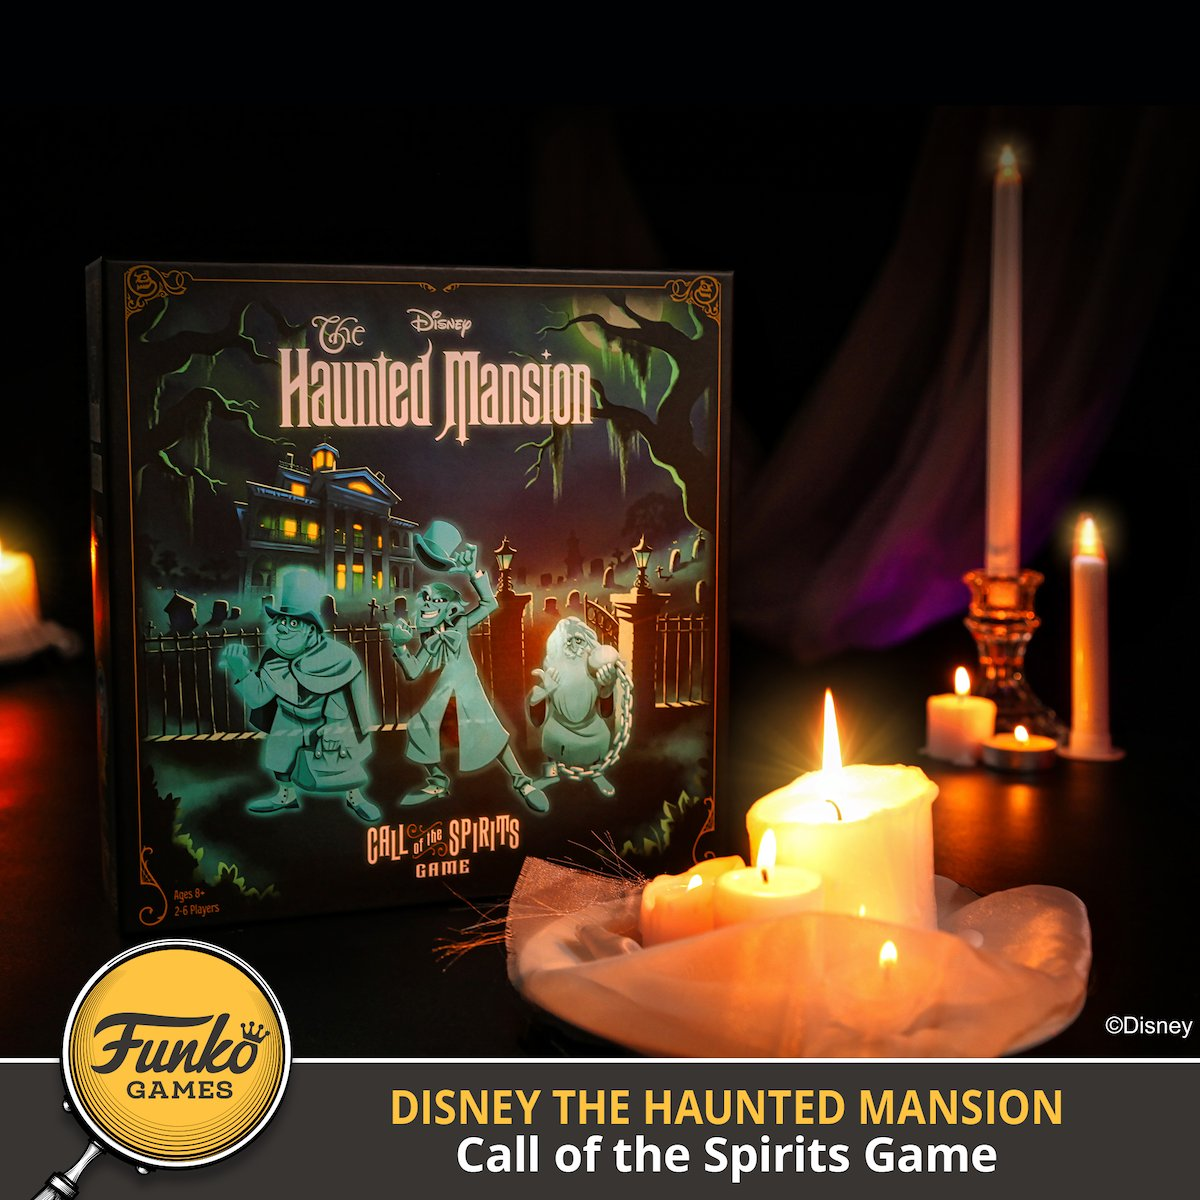 #Disney #TheHauntedMansion – Call of the Spirits Game will Materialize shortly.    Pre-orders available now! https://t.co/wNrk4KOBih  W/ @Disney #DisneyParksHauntedMansion #FunkoGames https://t.co/jm2uOjVt1D